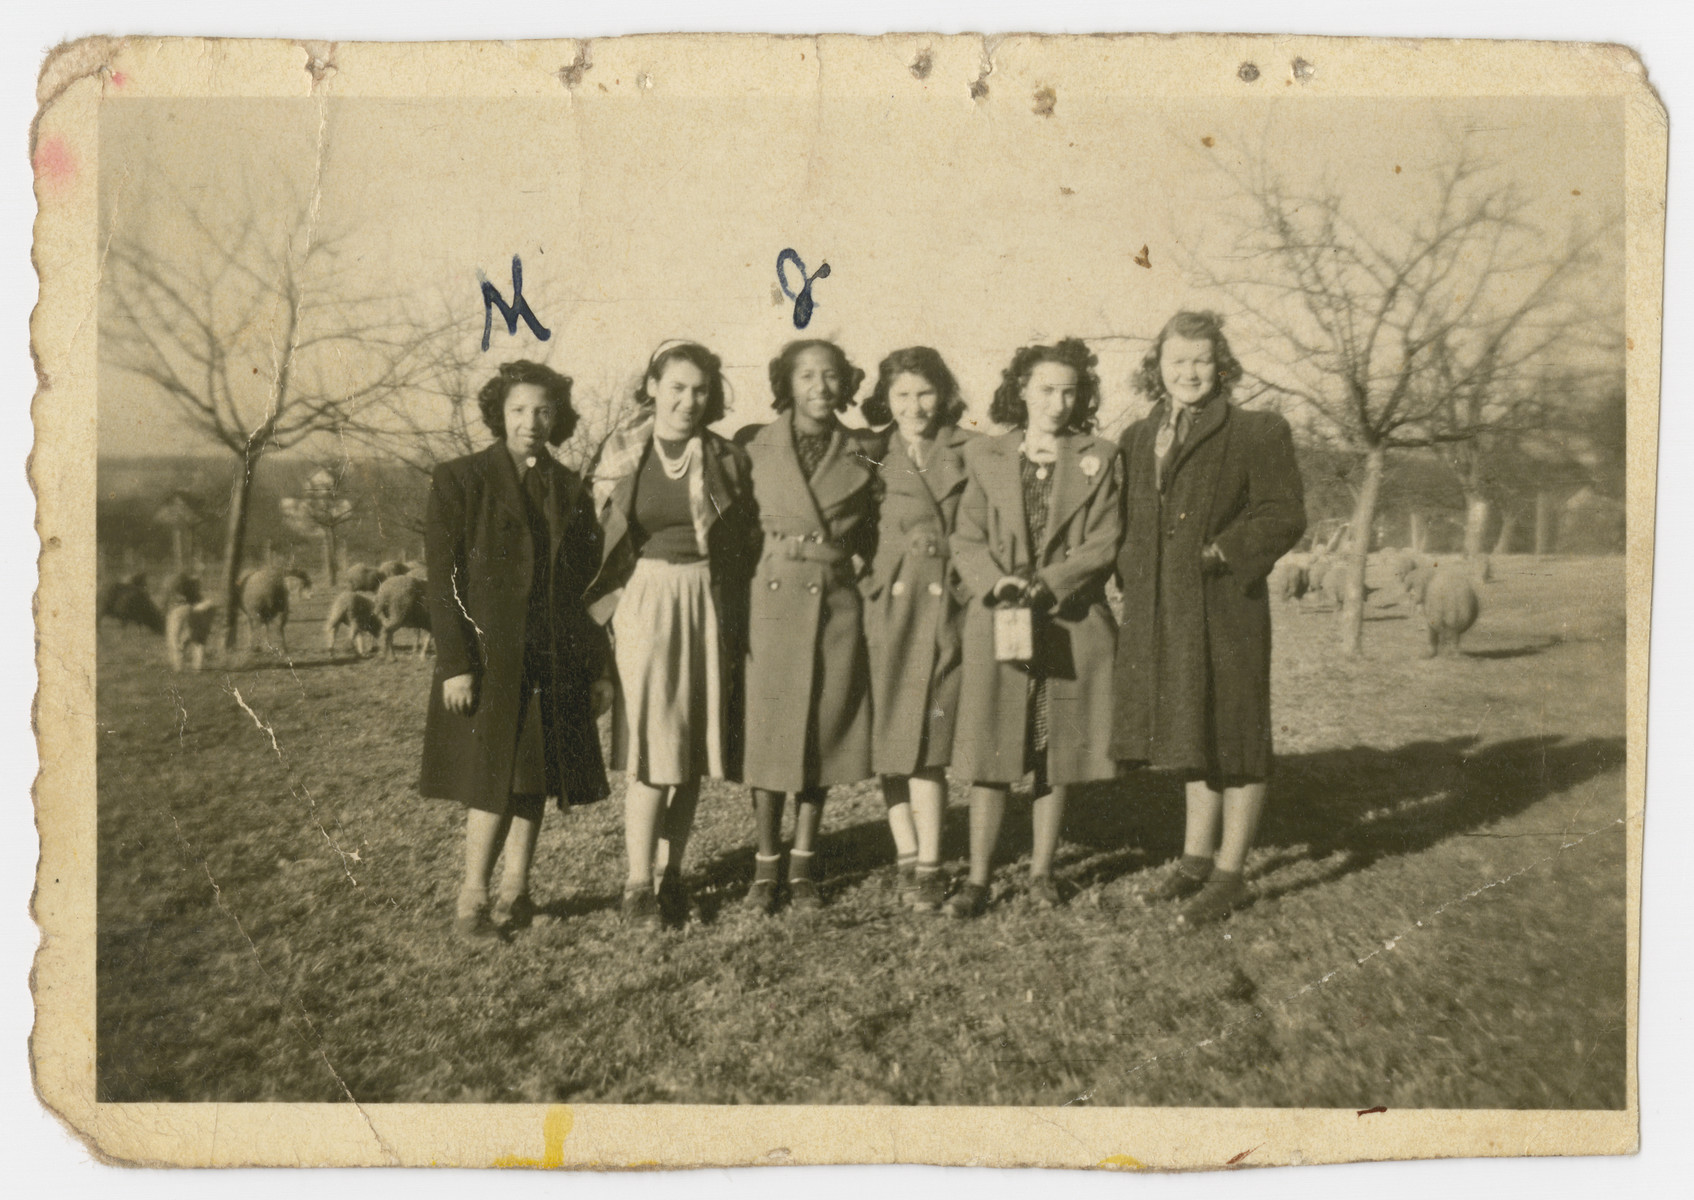 Group portrait of teenagers in the Liebenau internment camp.  Marilyn Johnson is pictured on the far left and Jaqueline Johnson is pictured third from the left.